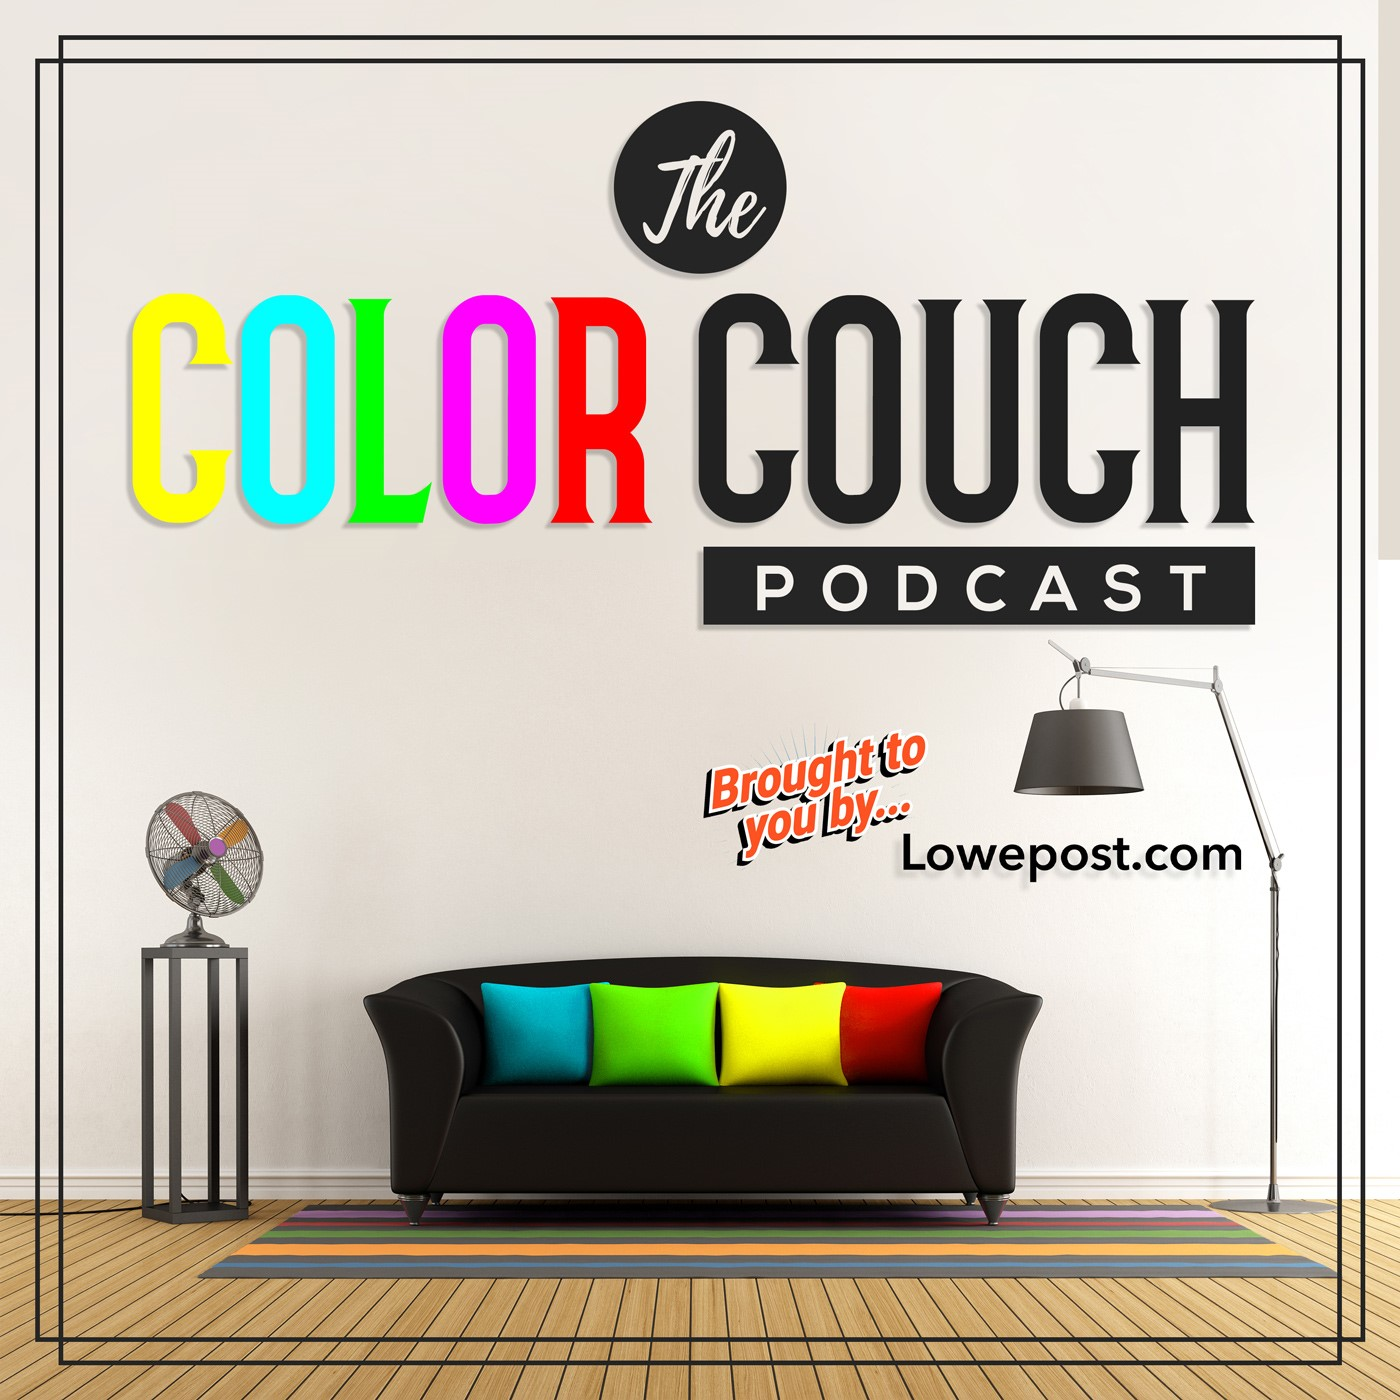 Artwork for podcast The Color Couch